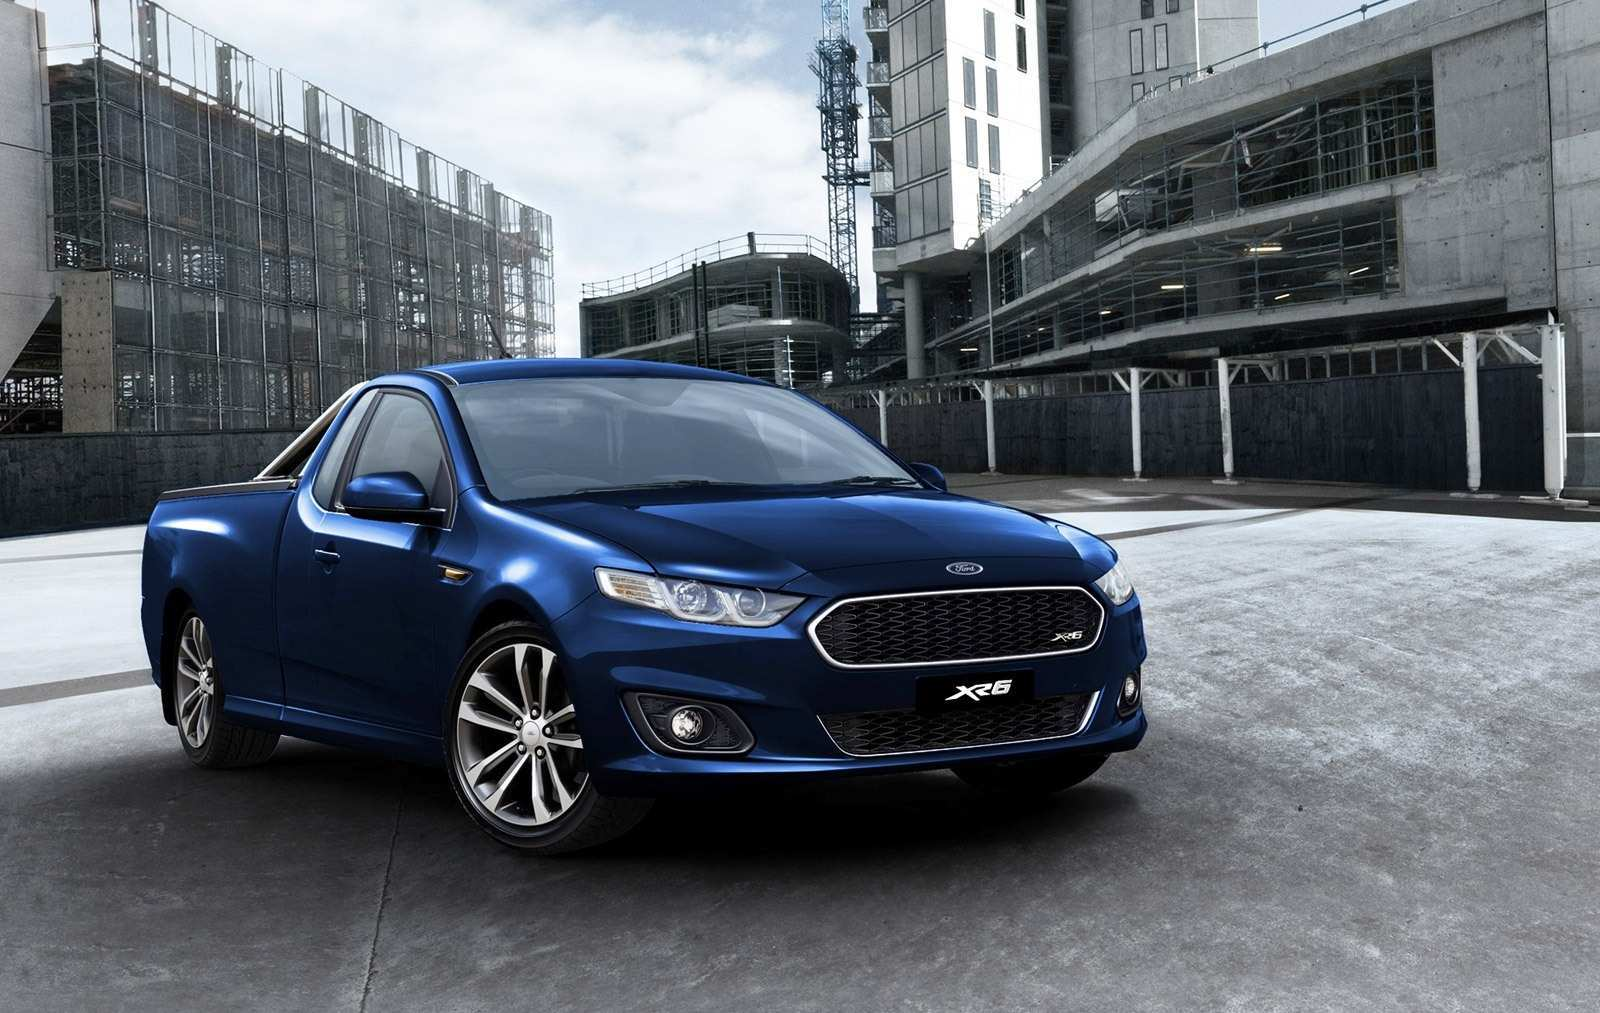 58 The Best 2020 Ford Falcon Xr8 Gt Photos